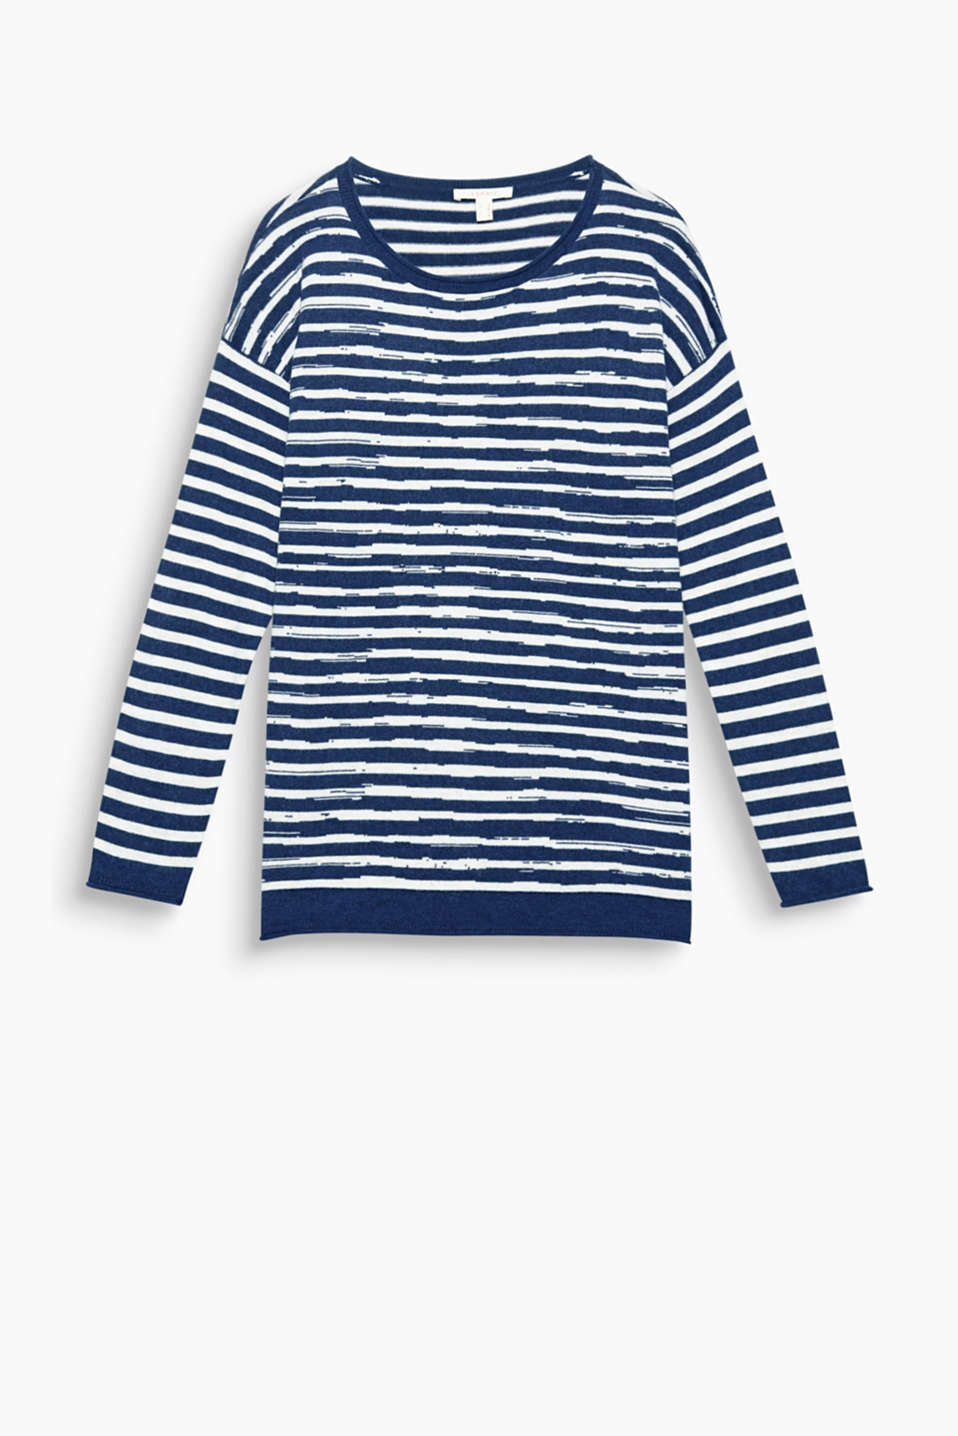 Statements or stripes on knits: soft jumper with a double-faced front section and rolled edges